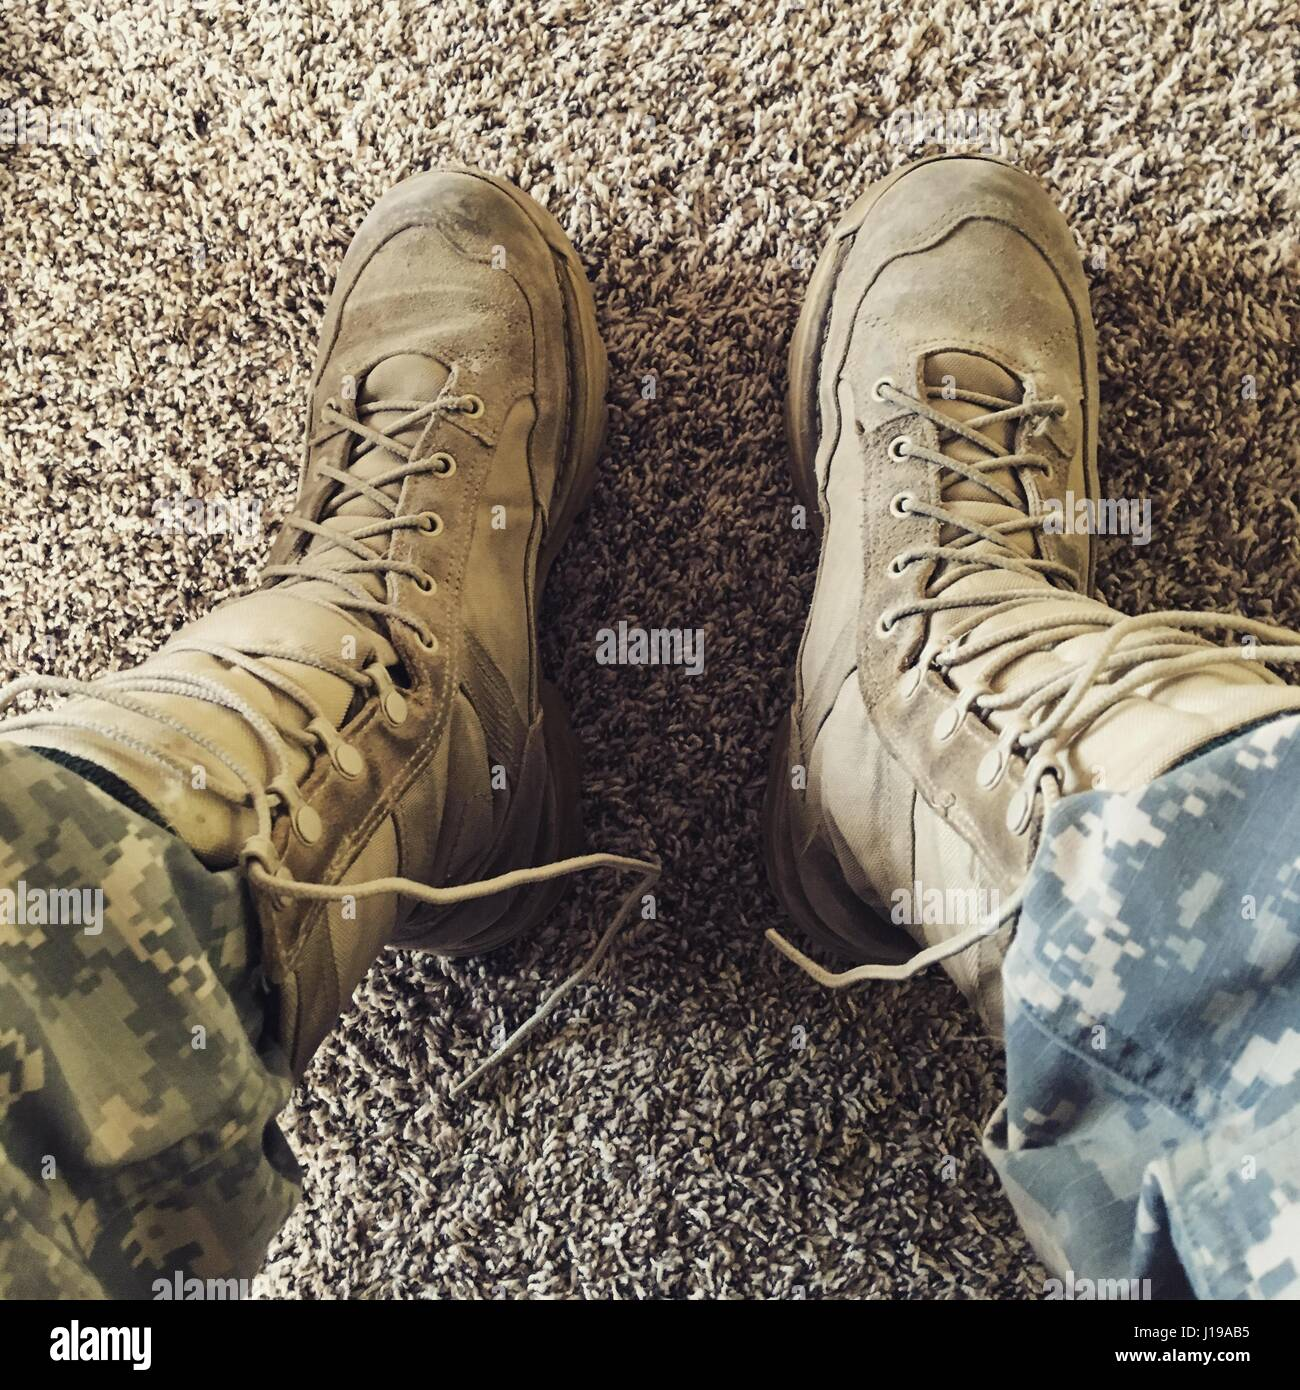 One Going To Army Stock Photos Images Alamy Standard Military Wire Harness Lacing The Feeling I Got My Boots Up Last Time Was Very Bitter Sweet